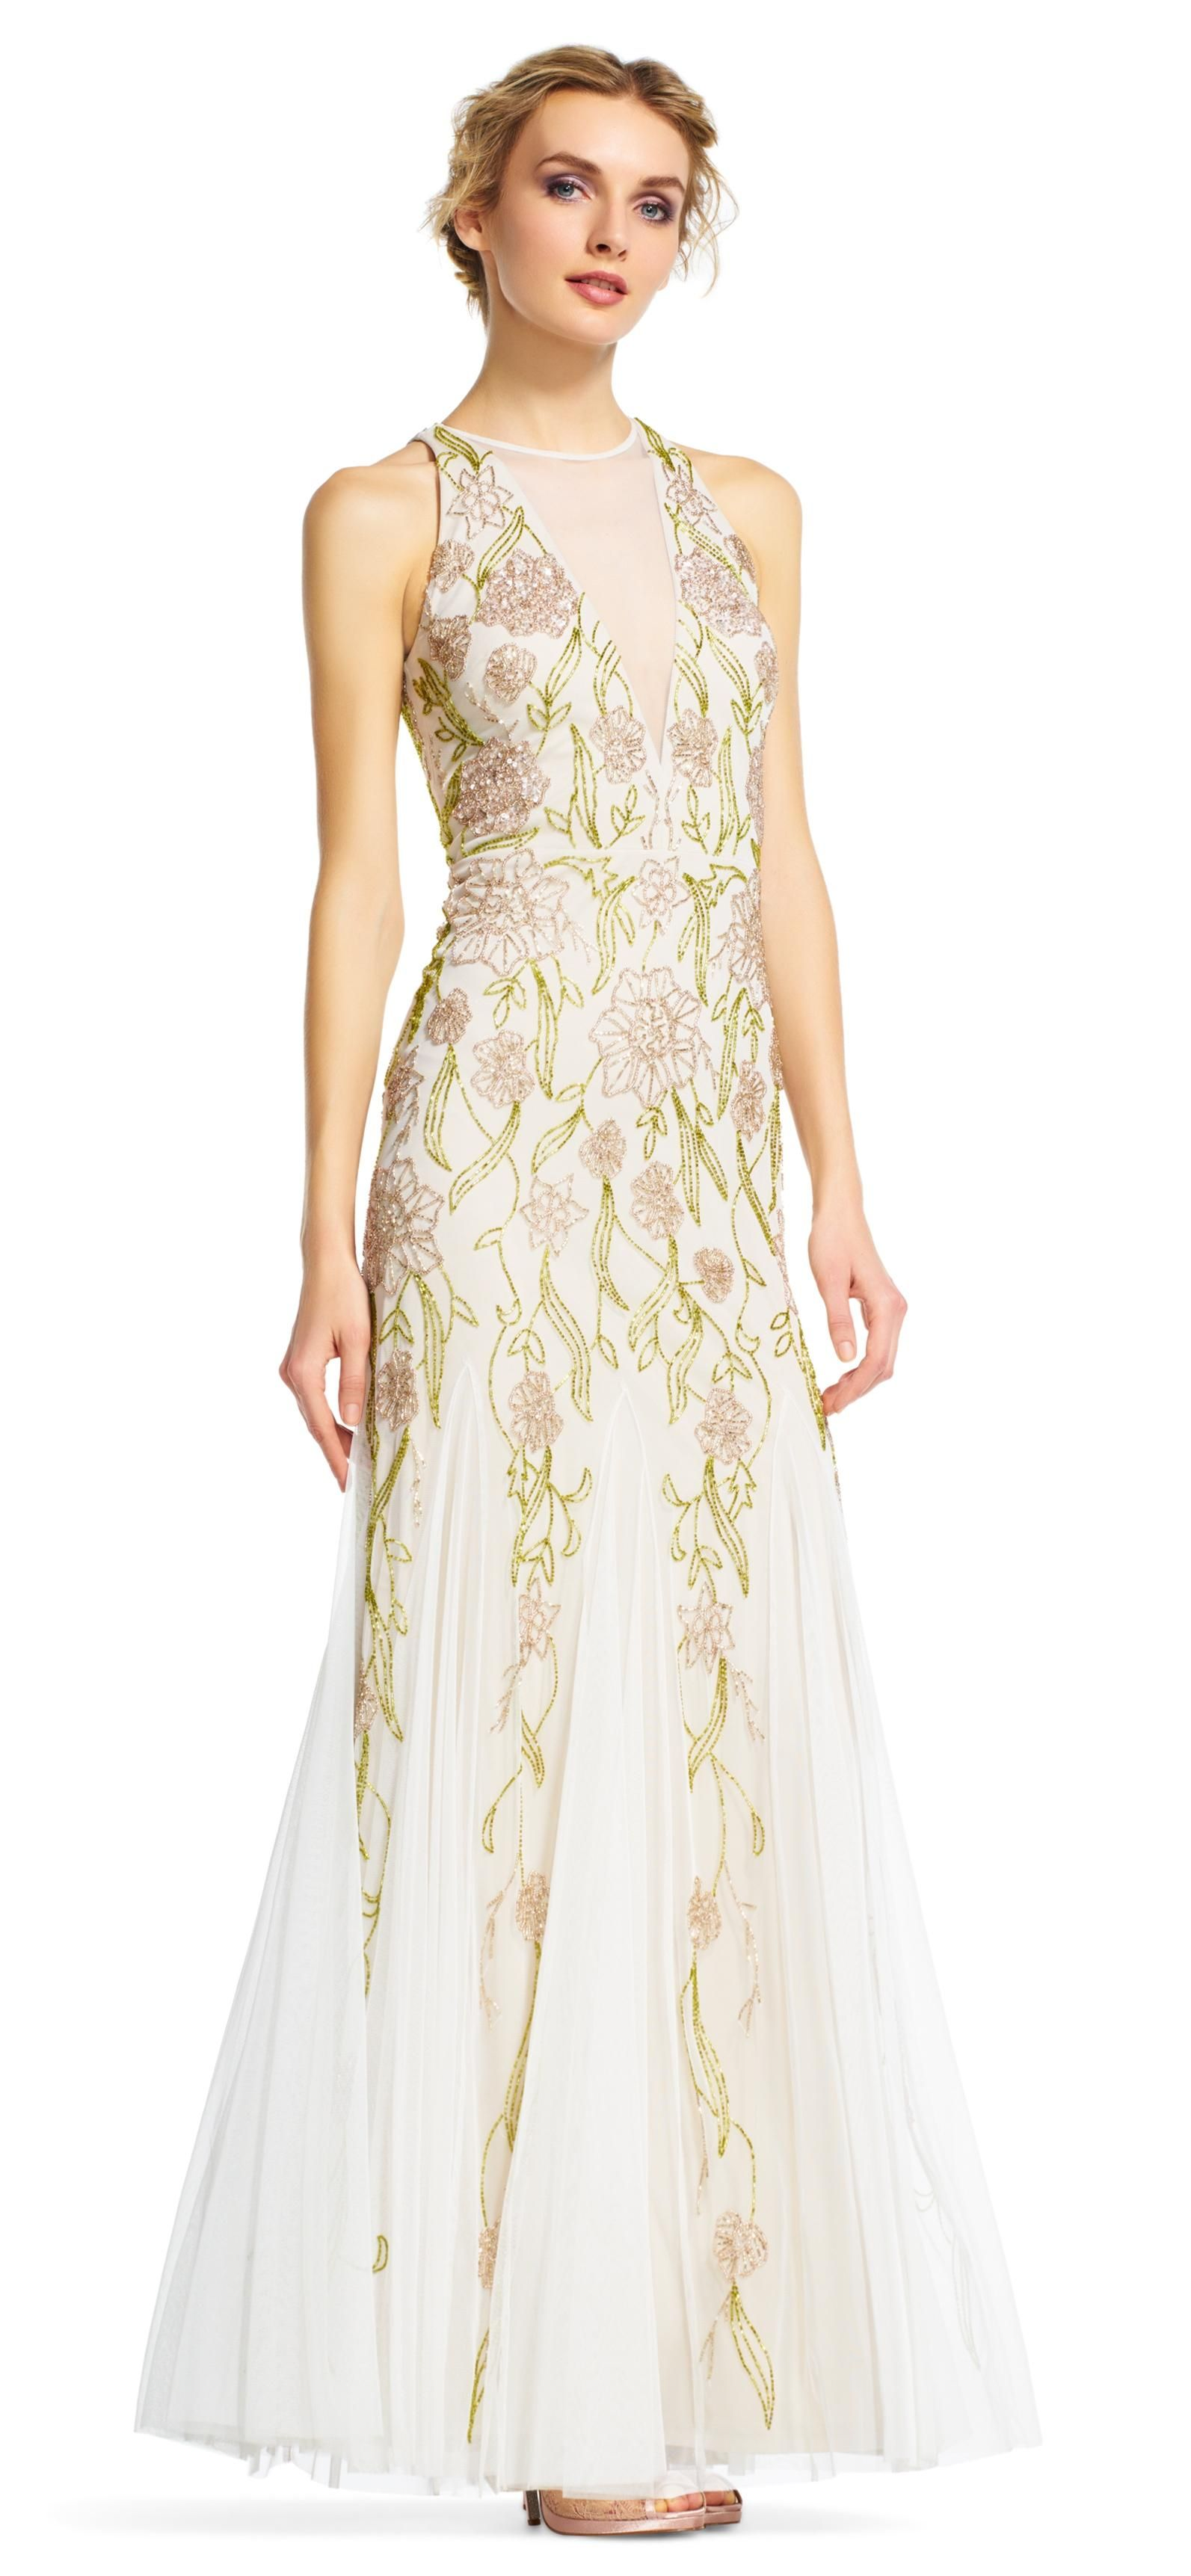 Adrianna Papell Ivorytaupe Multi Floral Beaded Halter With Chiffon Godet Skirt 12 Dress Free Shipping And Guaranteed Authenticity On: Taupe Shabby Chic Wedding Dresses At Reisefeber.org